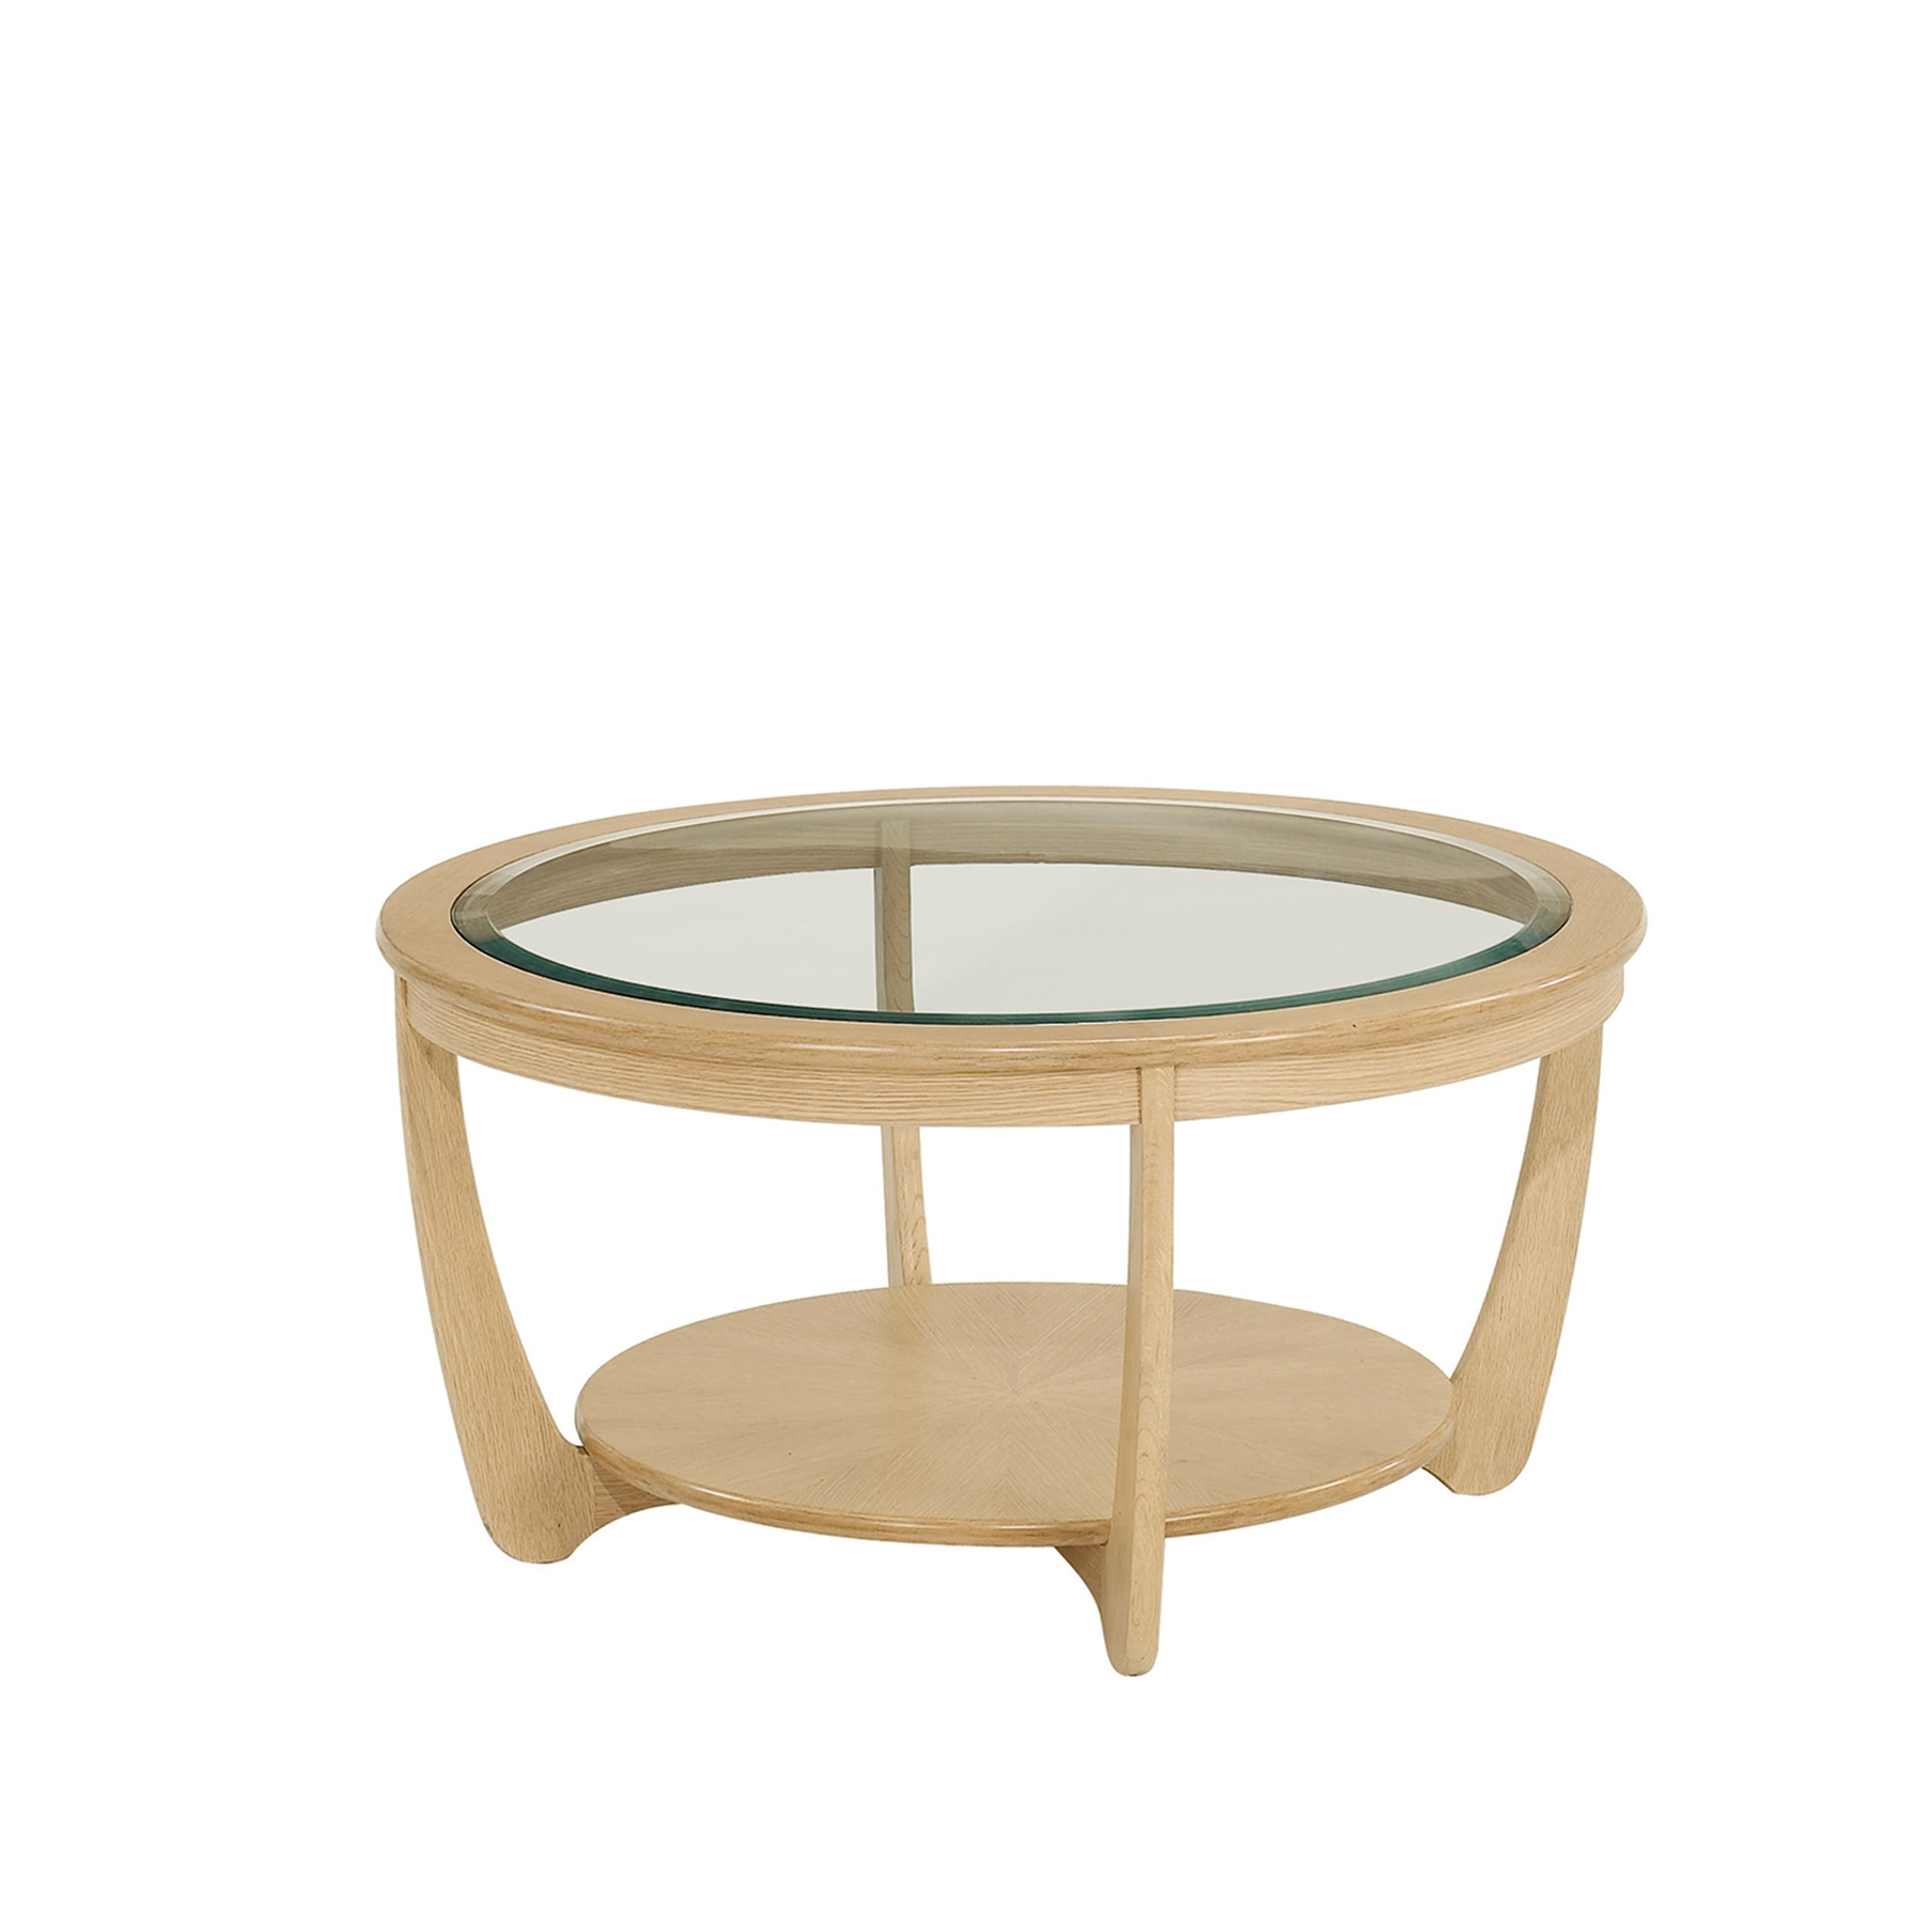 nathan shades oak glass top round coffee table tables end with loading zoom chunky the french rugs that brown leather sofa usa girl twin beds furniture homesense jobs country wood